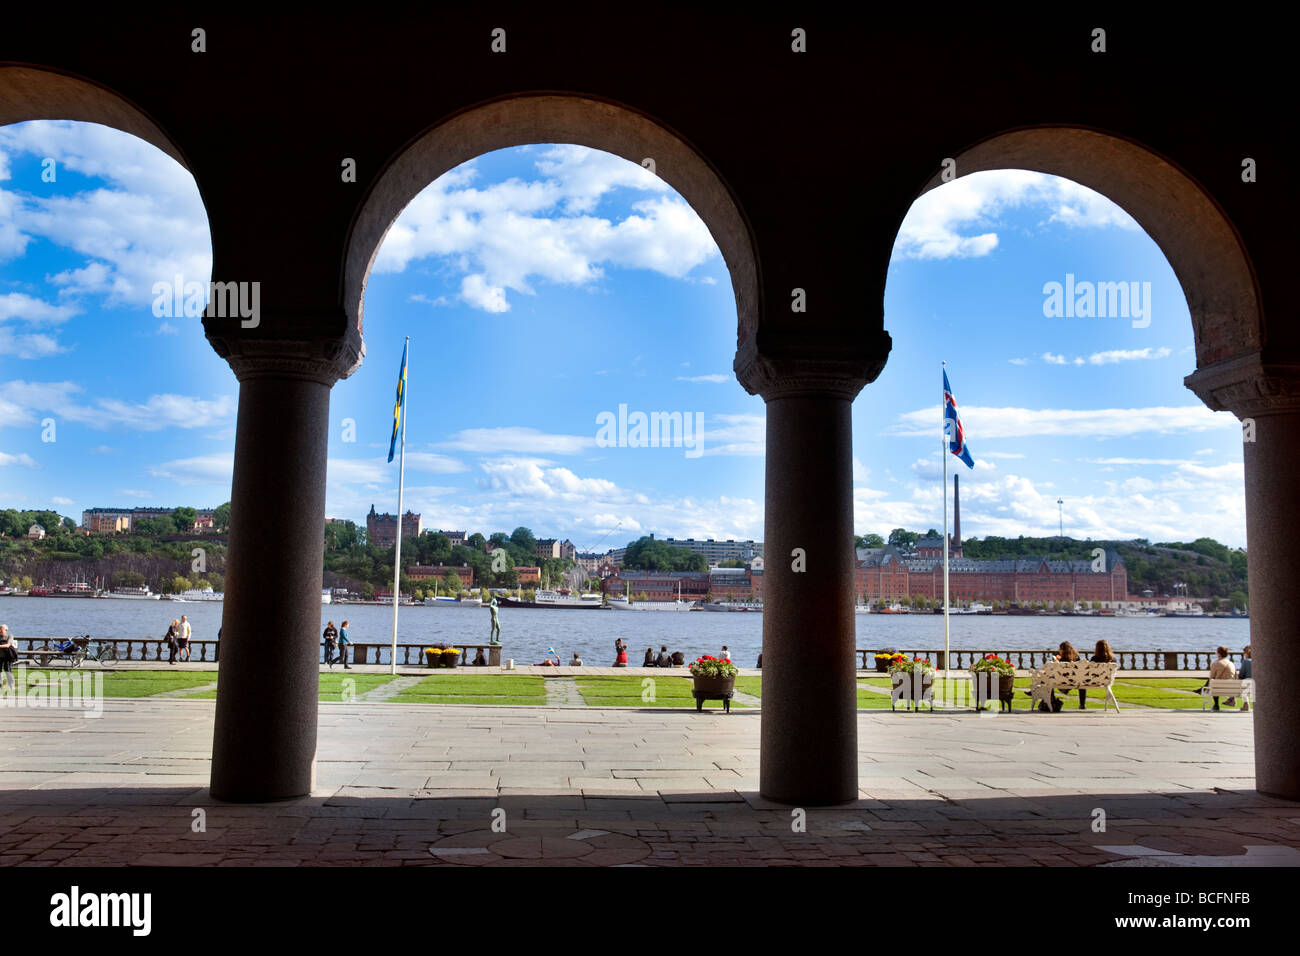 Stadhuset, City hall, Stockholm (Sweden) - Stock Image